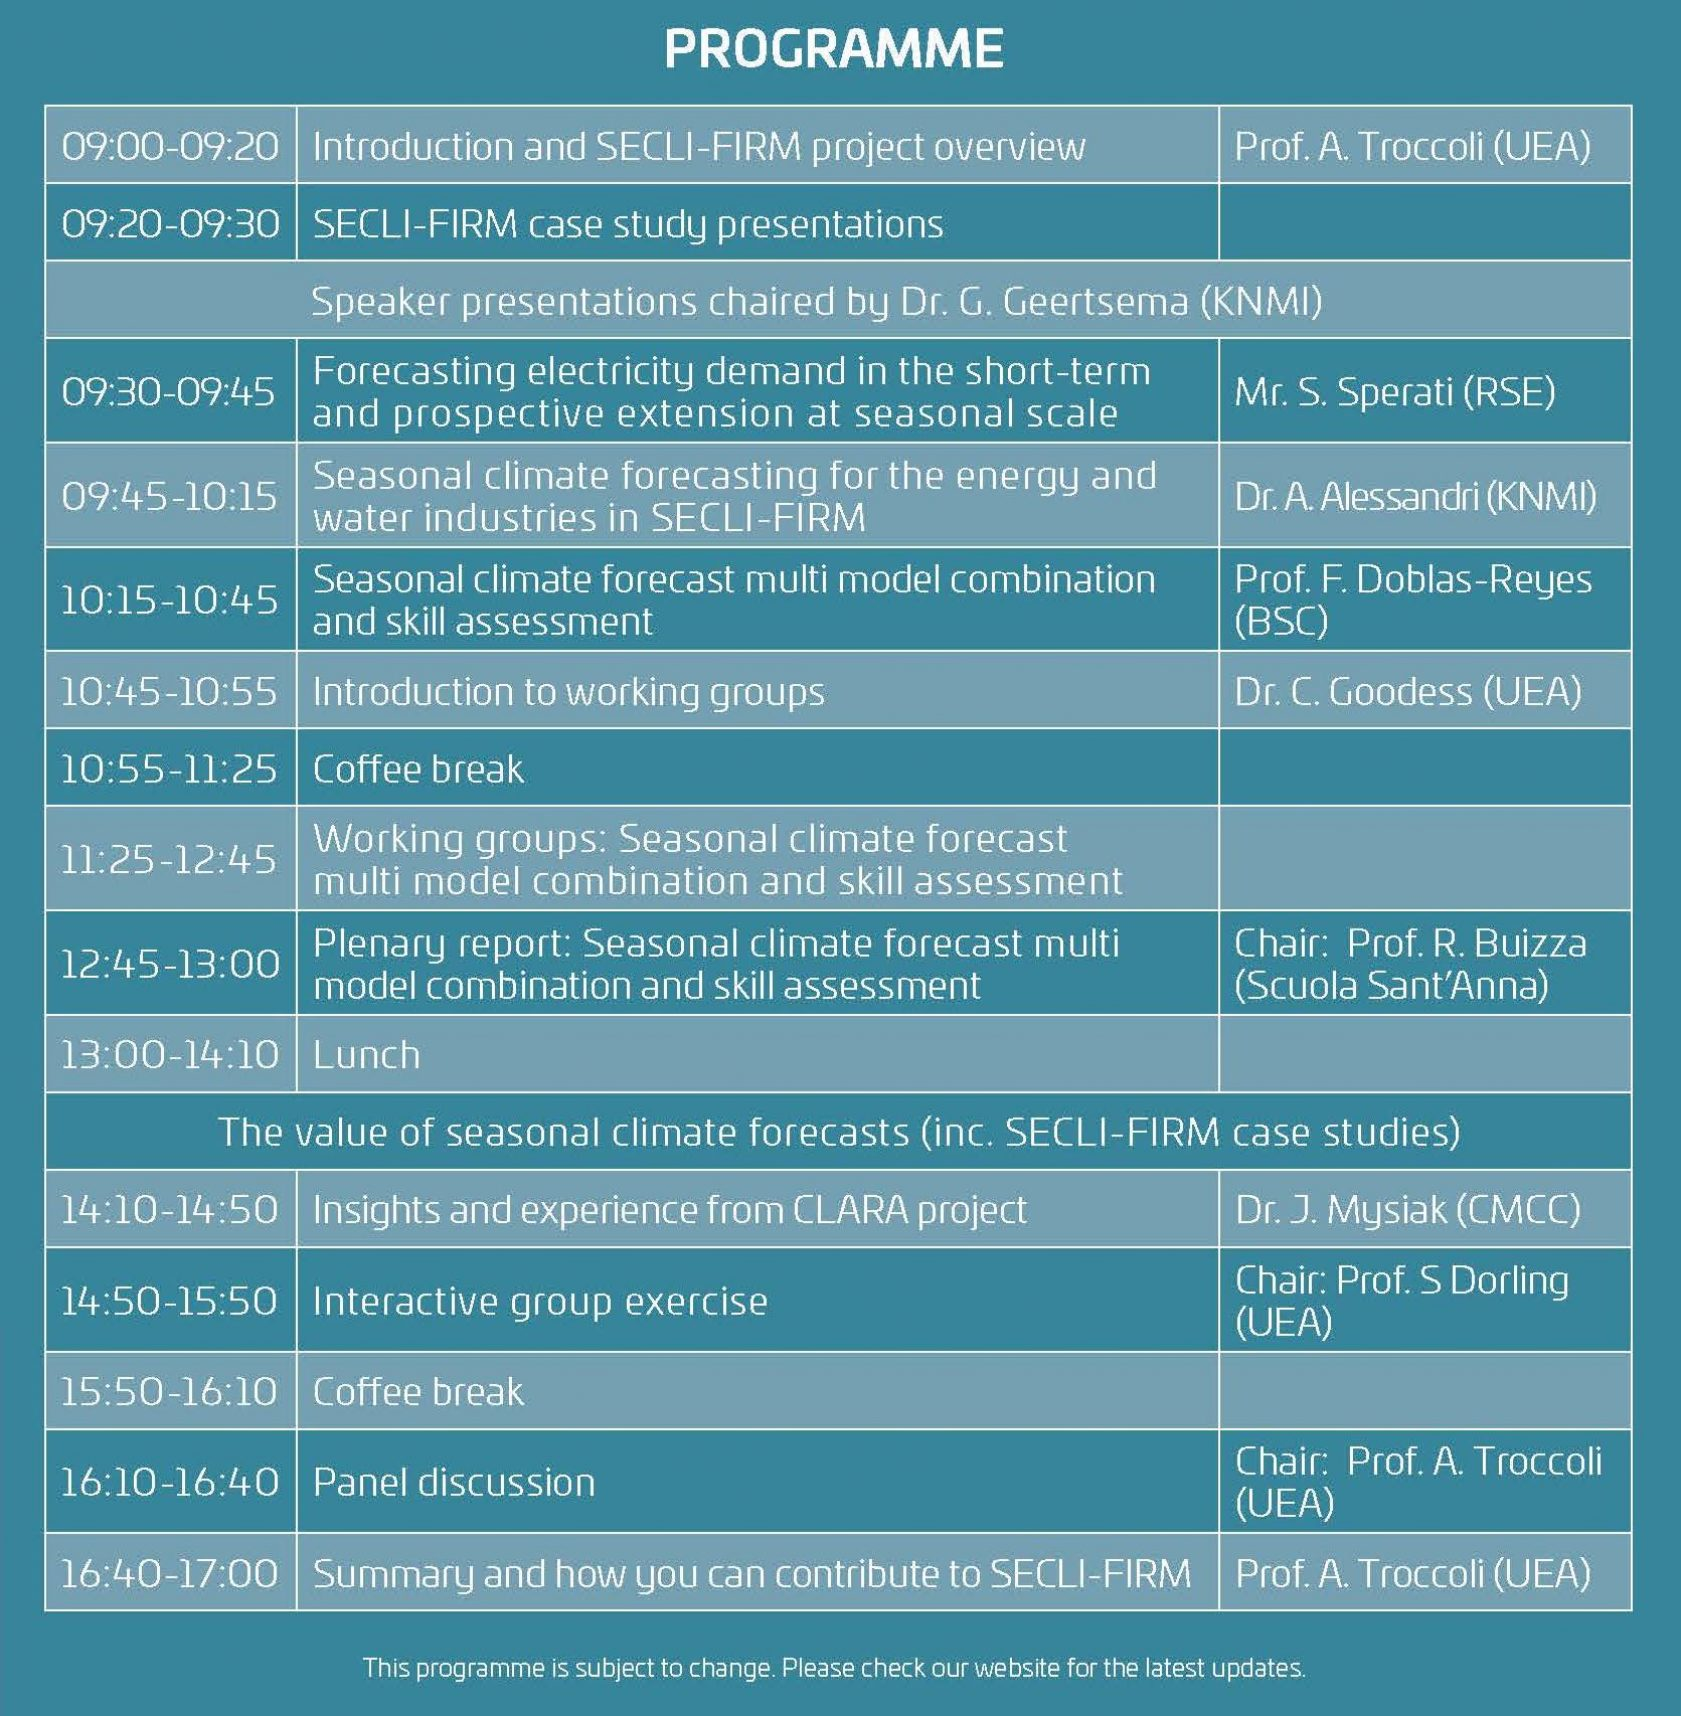 SECLI-FIRM Workshop Programme V9 FINAL 10.01.19